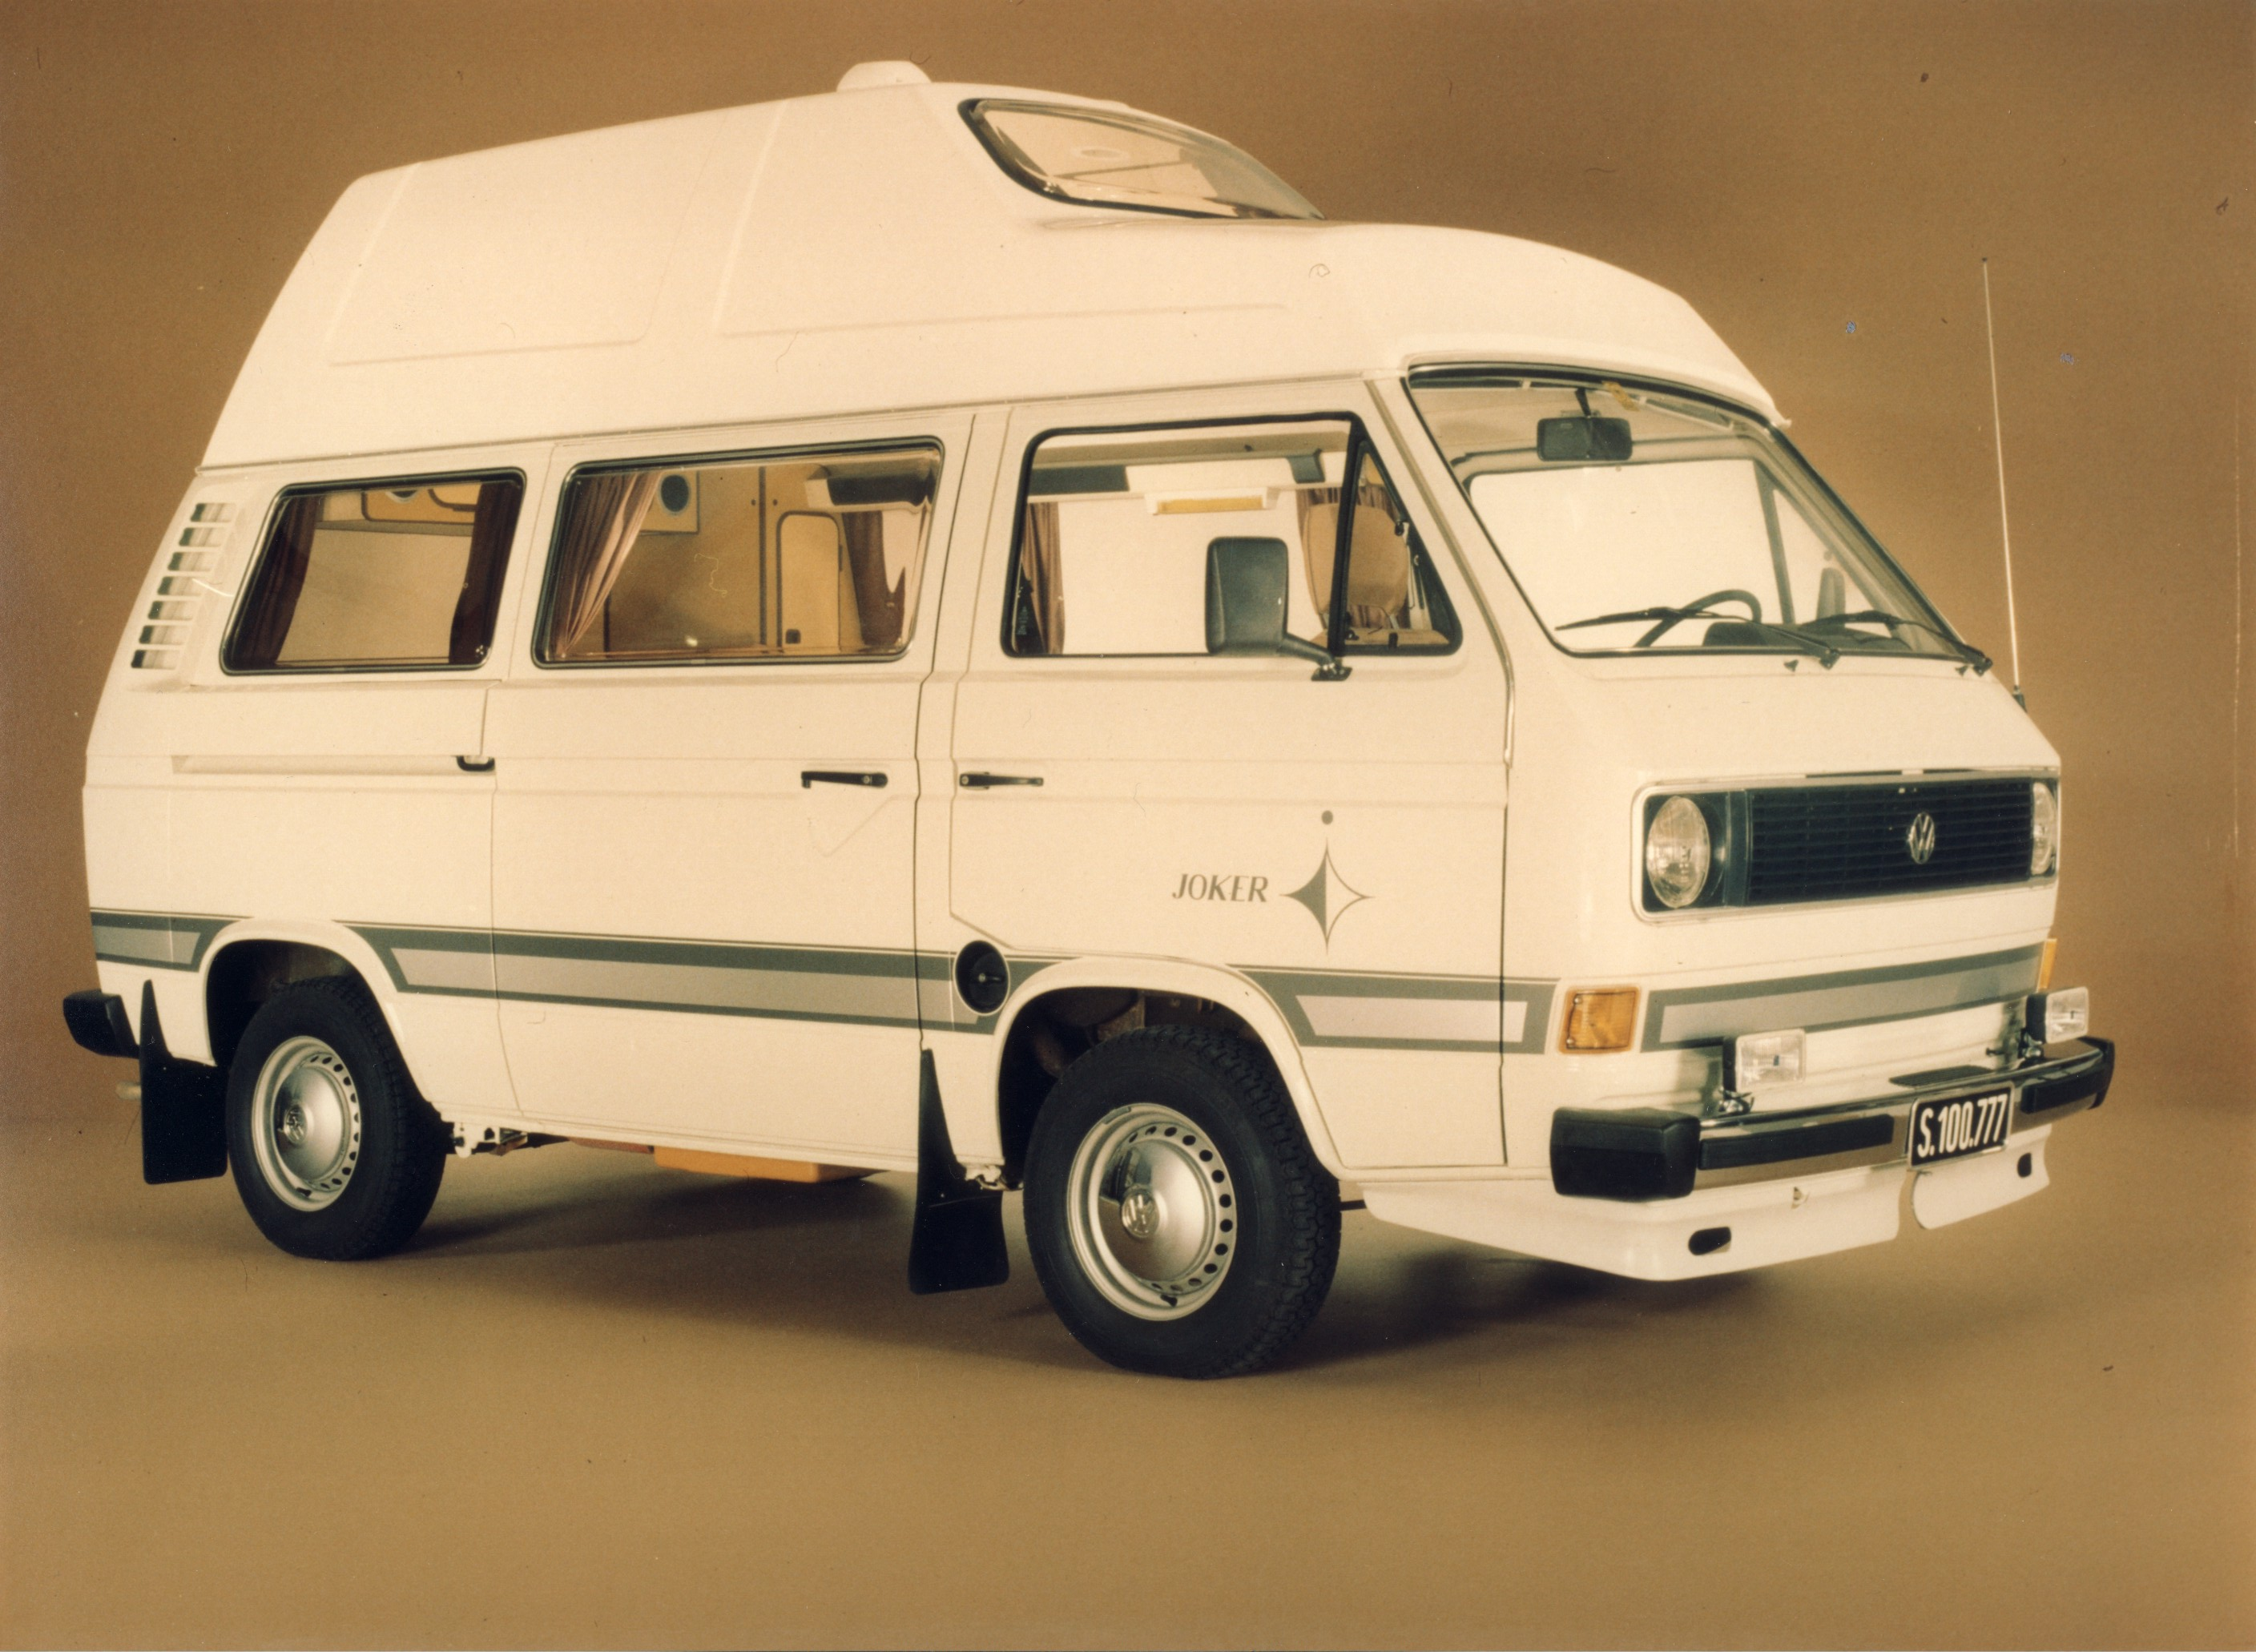 westfalia_joker_2